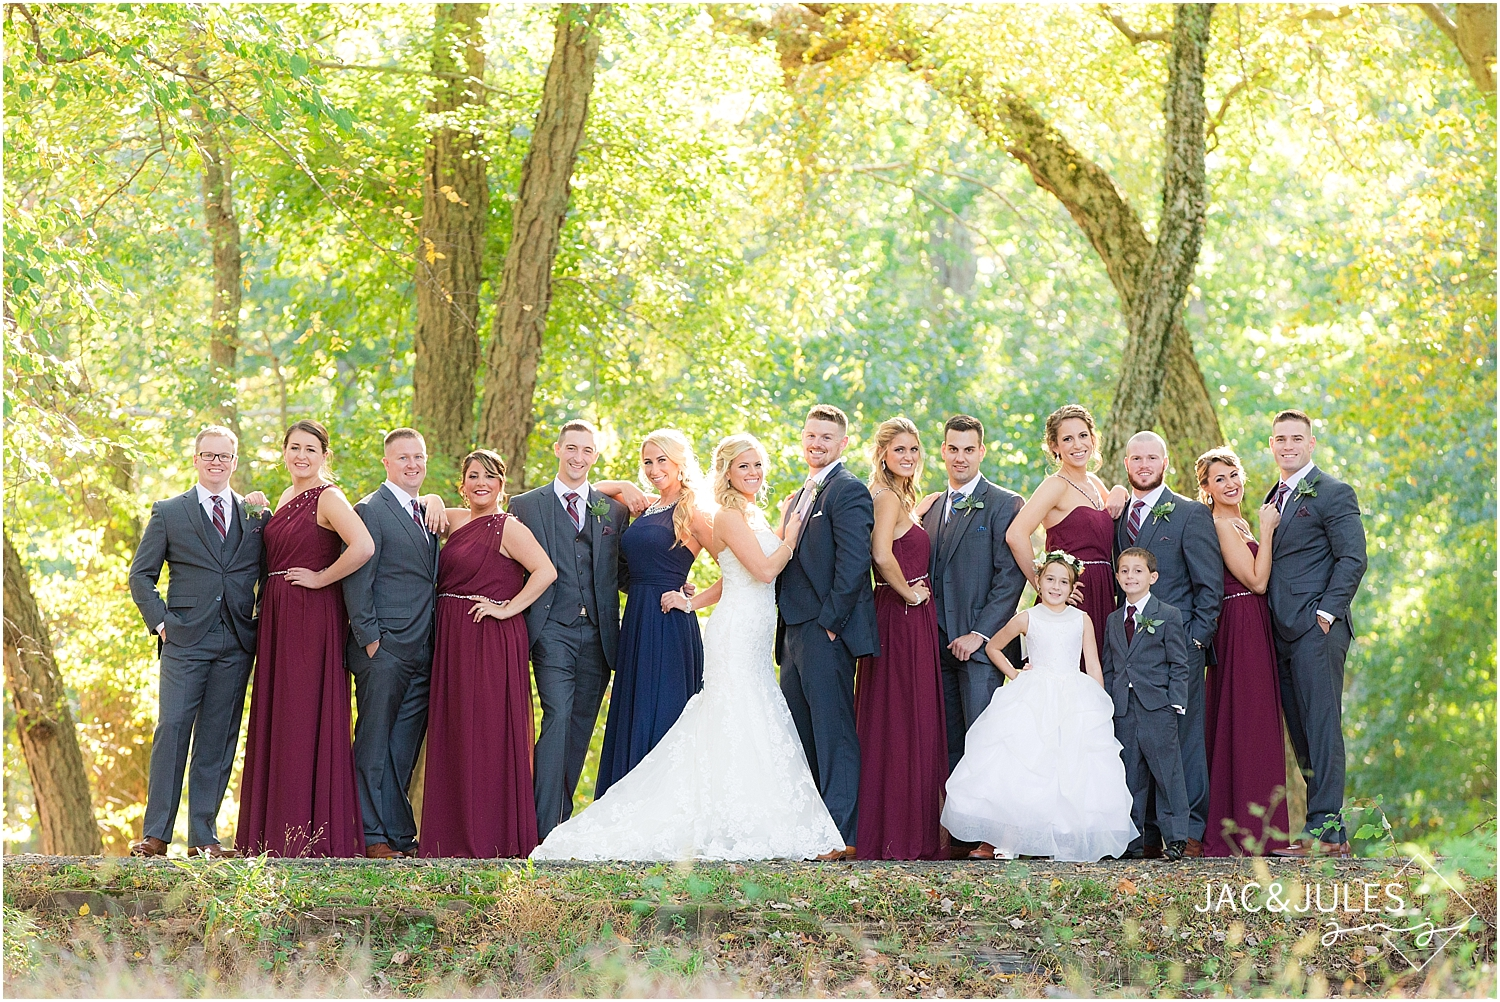 jacnjules photographs bridal party wearing navy and maroon at Allaire State Park, NJ